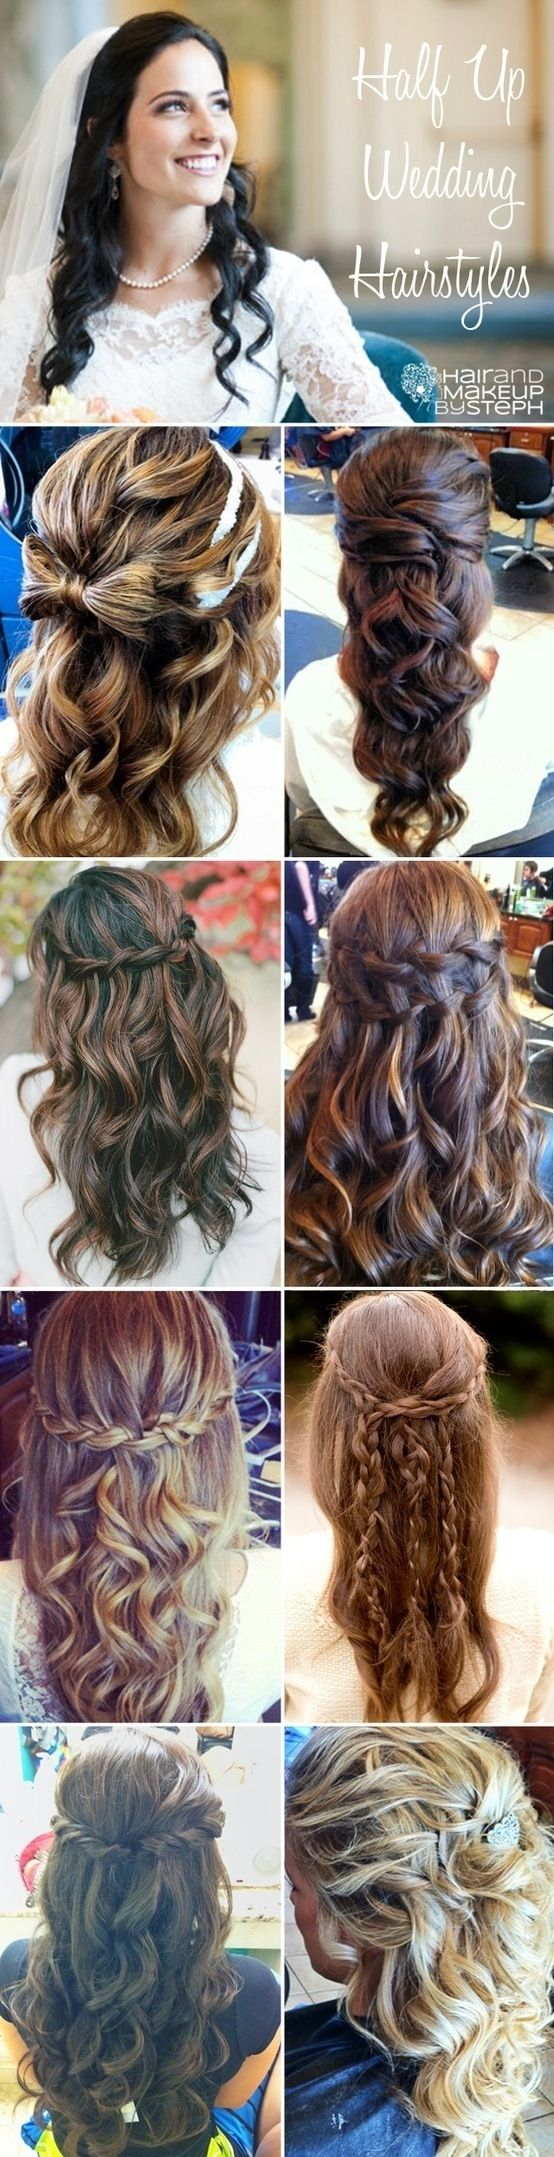 Braid and curls hairstyles my day pinterest curled hairstyles